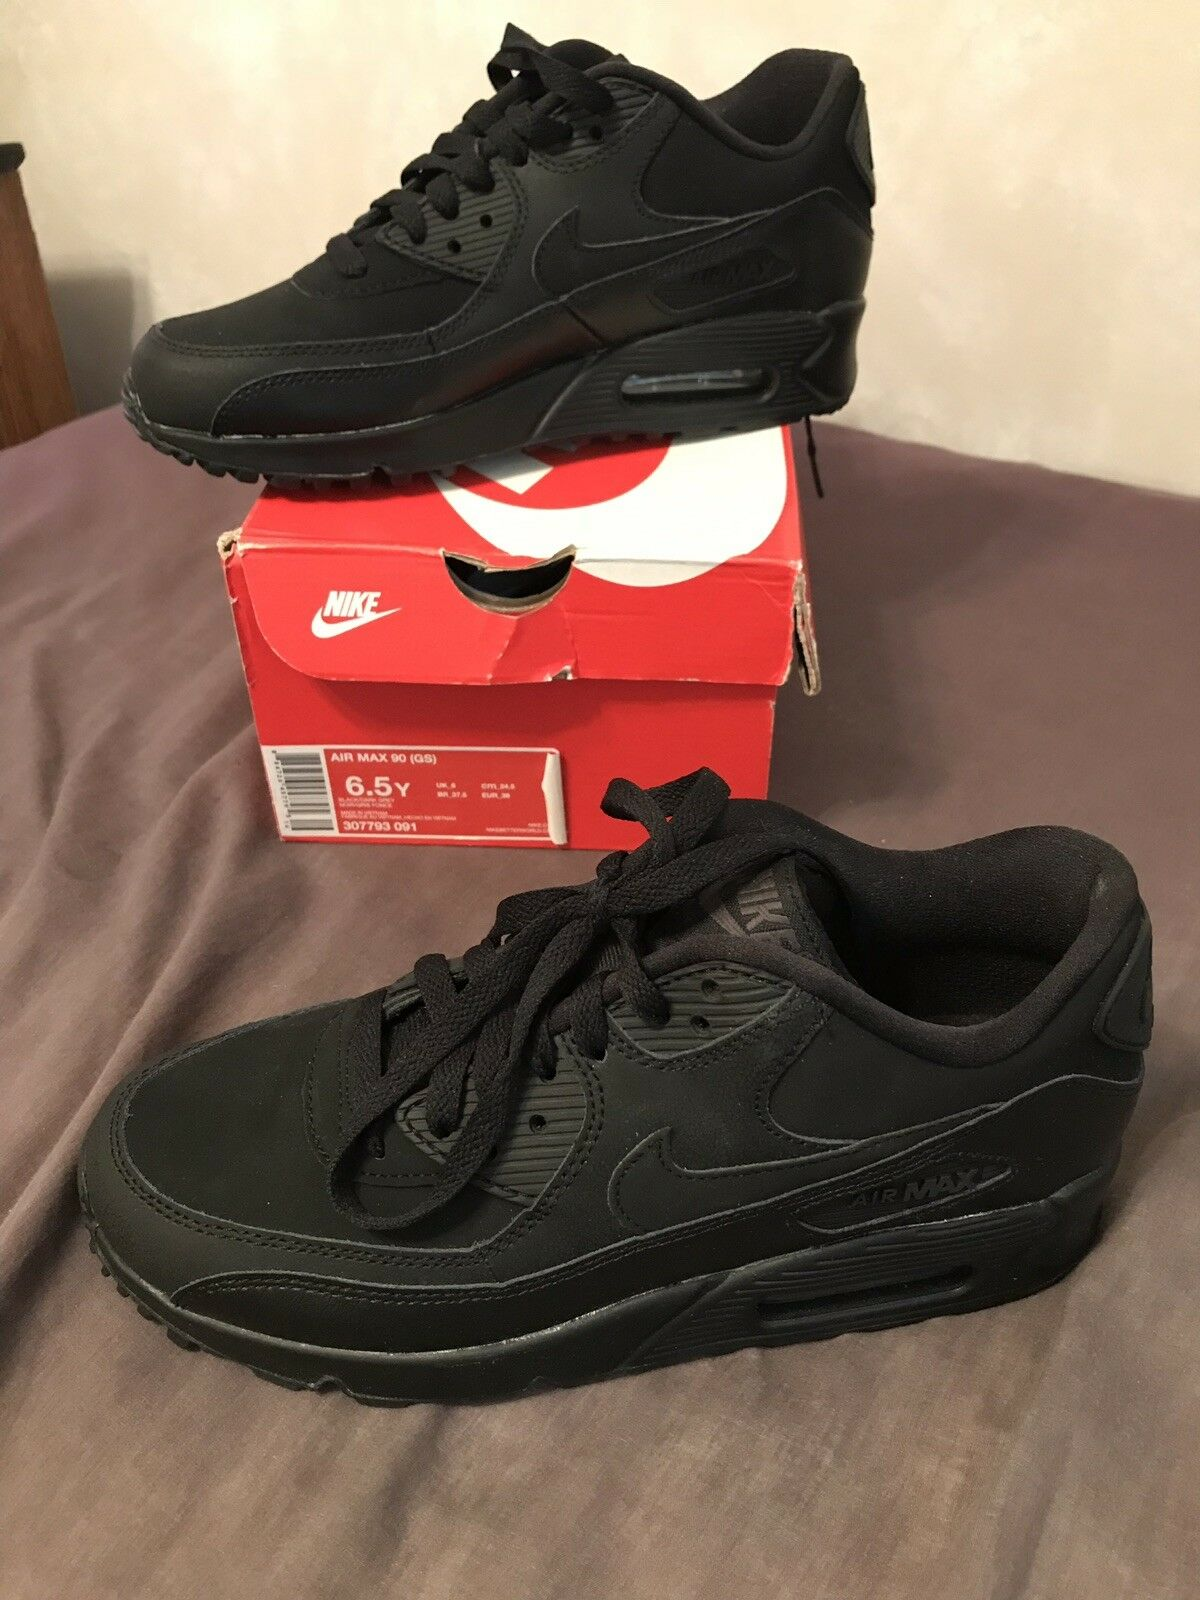 BRAND NEW IN BOX  Nike Air Max 90 - Black Youth Size 6.5 -UNWORN  sneakers shoes